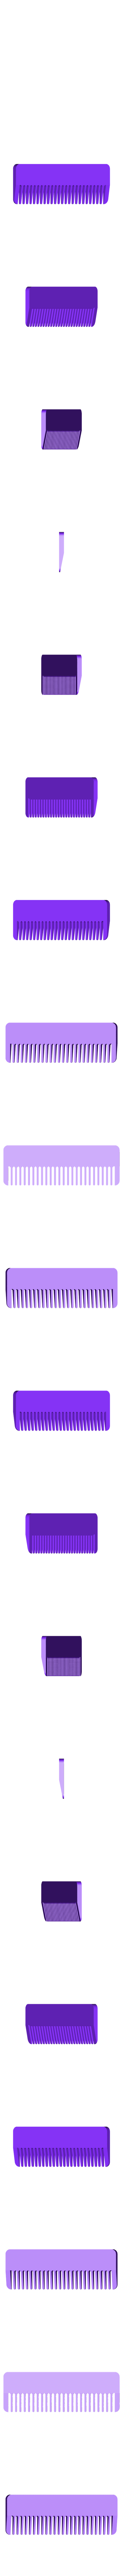 customized_travel_comb_no2.stl Download free STL file Customizable Comb • 3D printable model, MightyNozzle